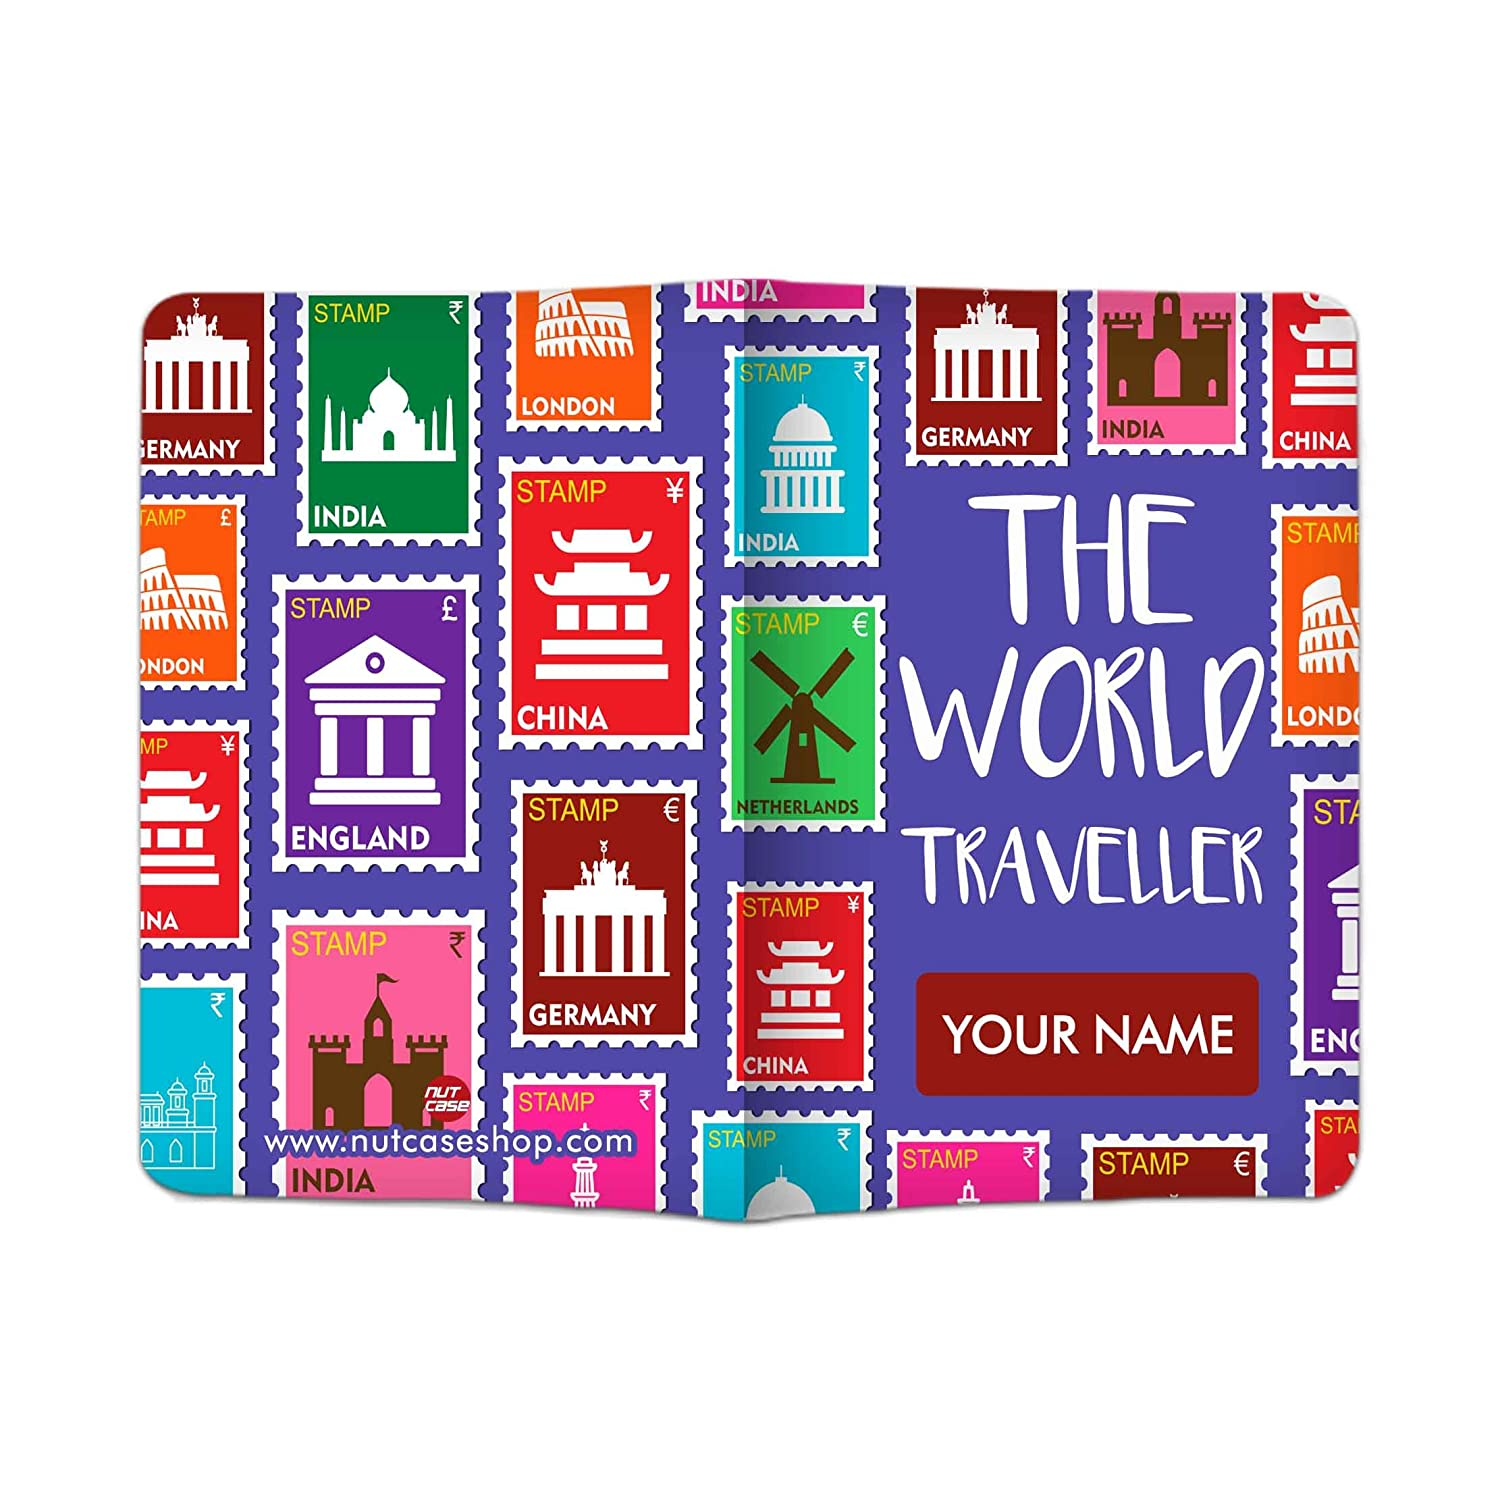 Nutcase Designer Passport Cover Travel Document Holder Polyfabric Faux Leather Material